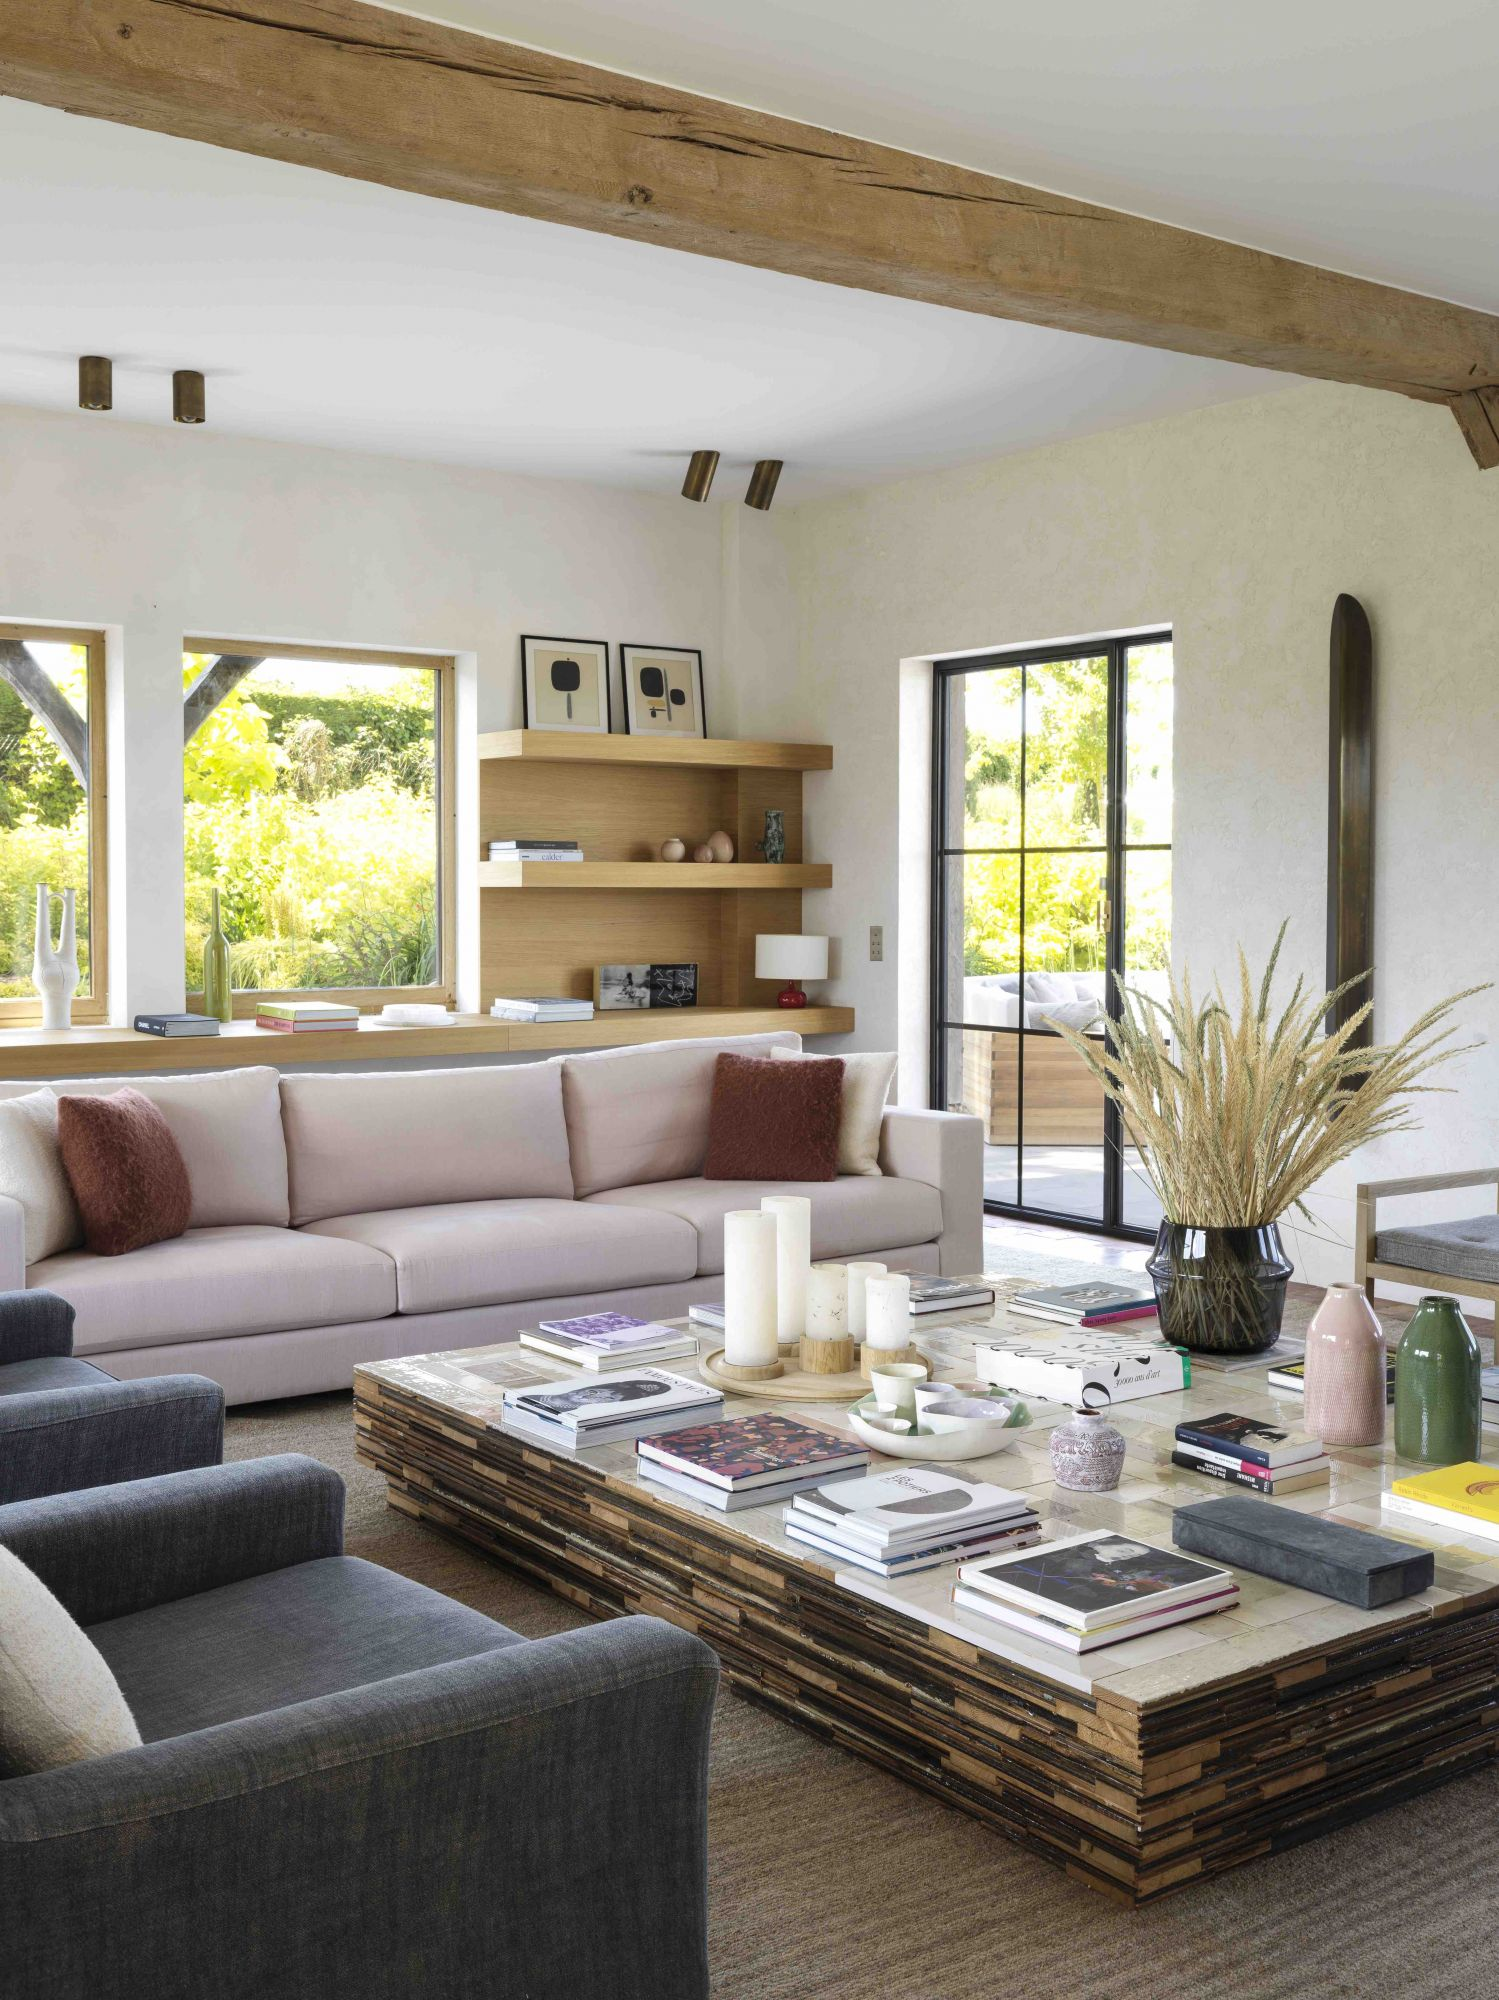 Home Tour: A Cosy French Villa With A Rustic Charm